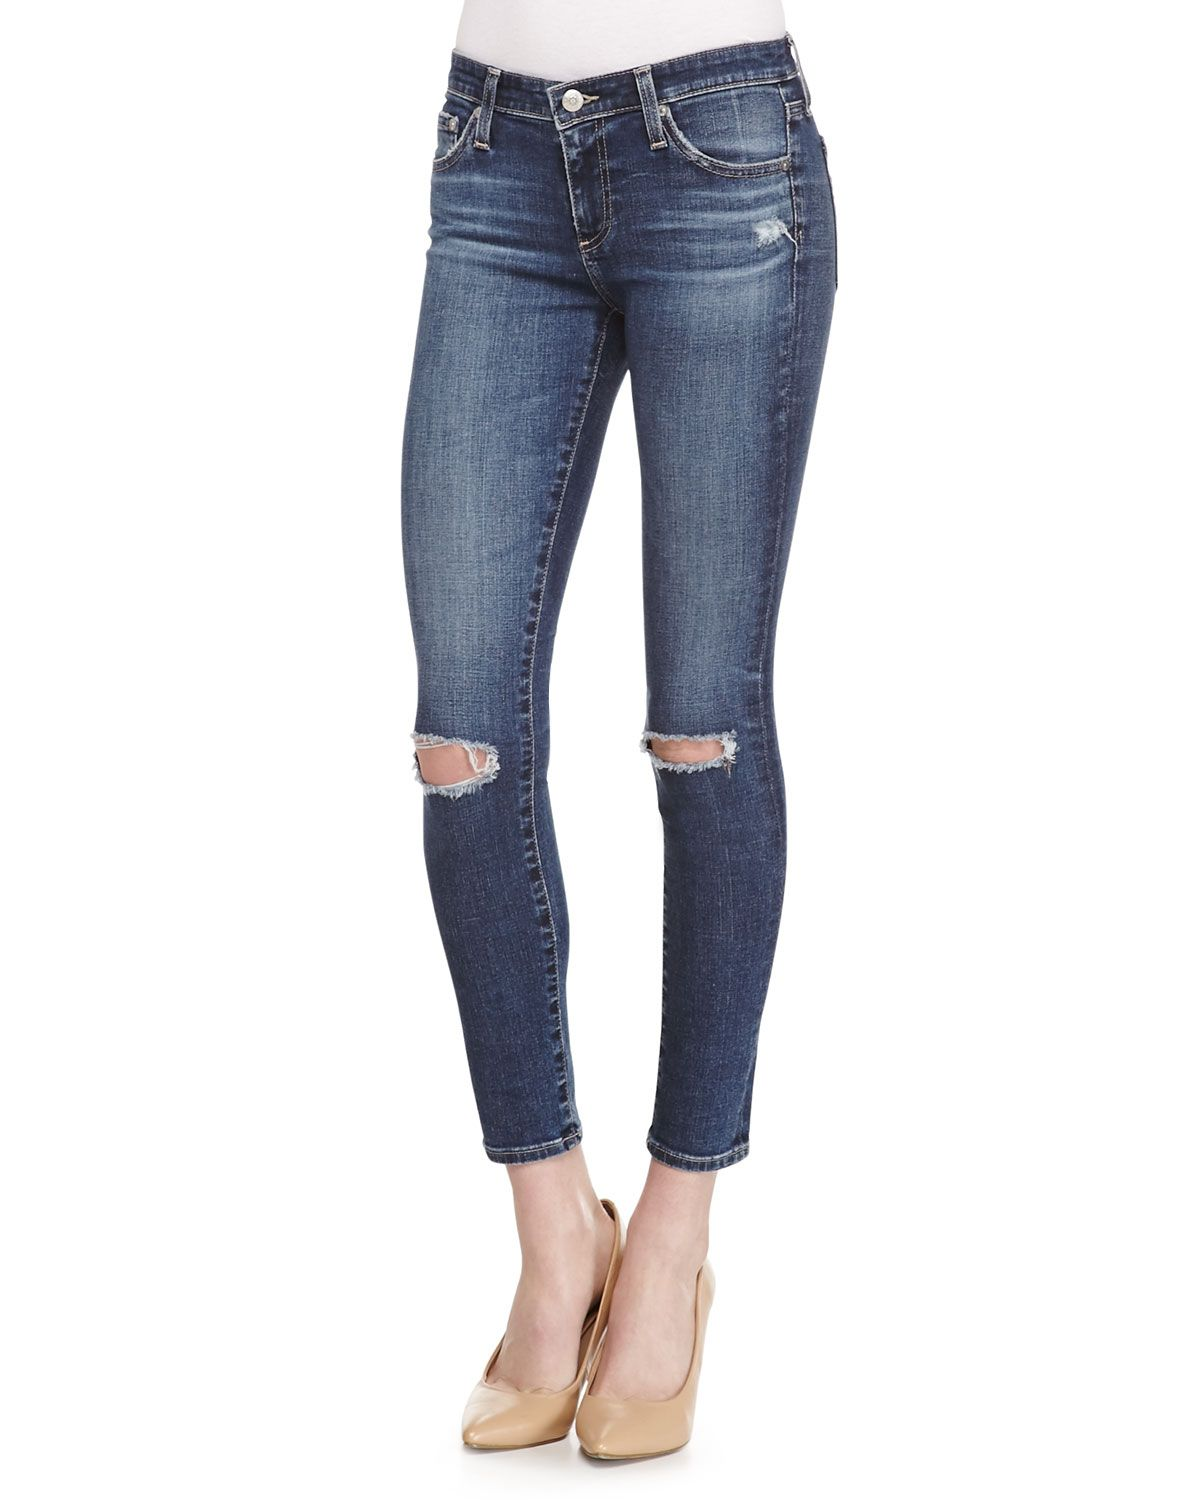 Super Skinny Denim Leggings, 11 Year Dreamer, Size: 29, 11y Dreamer - Alexa Chung for AG